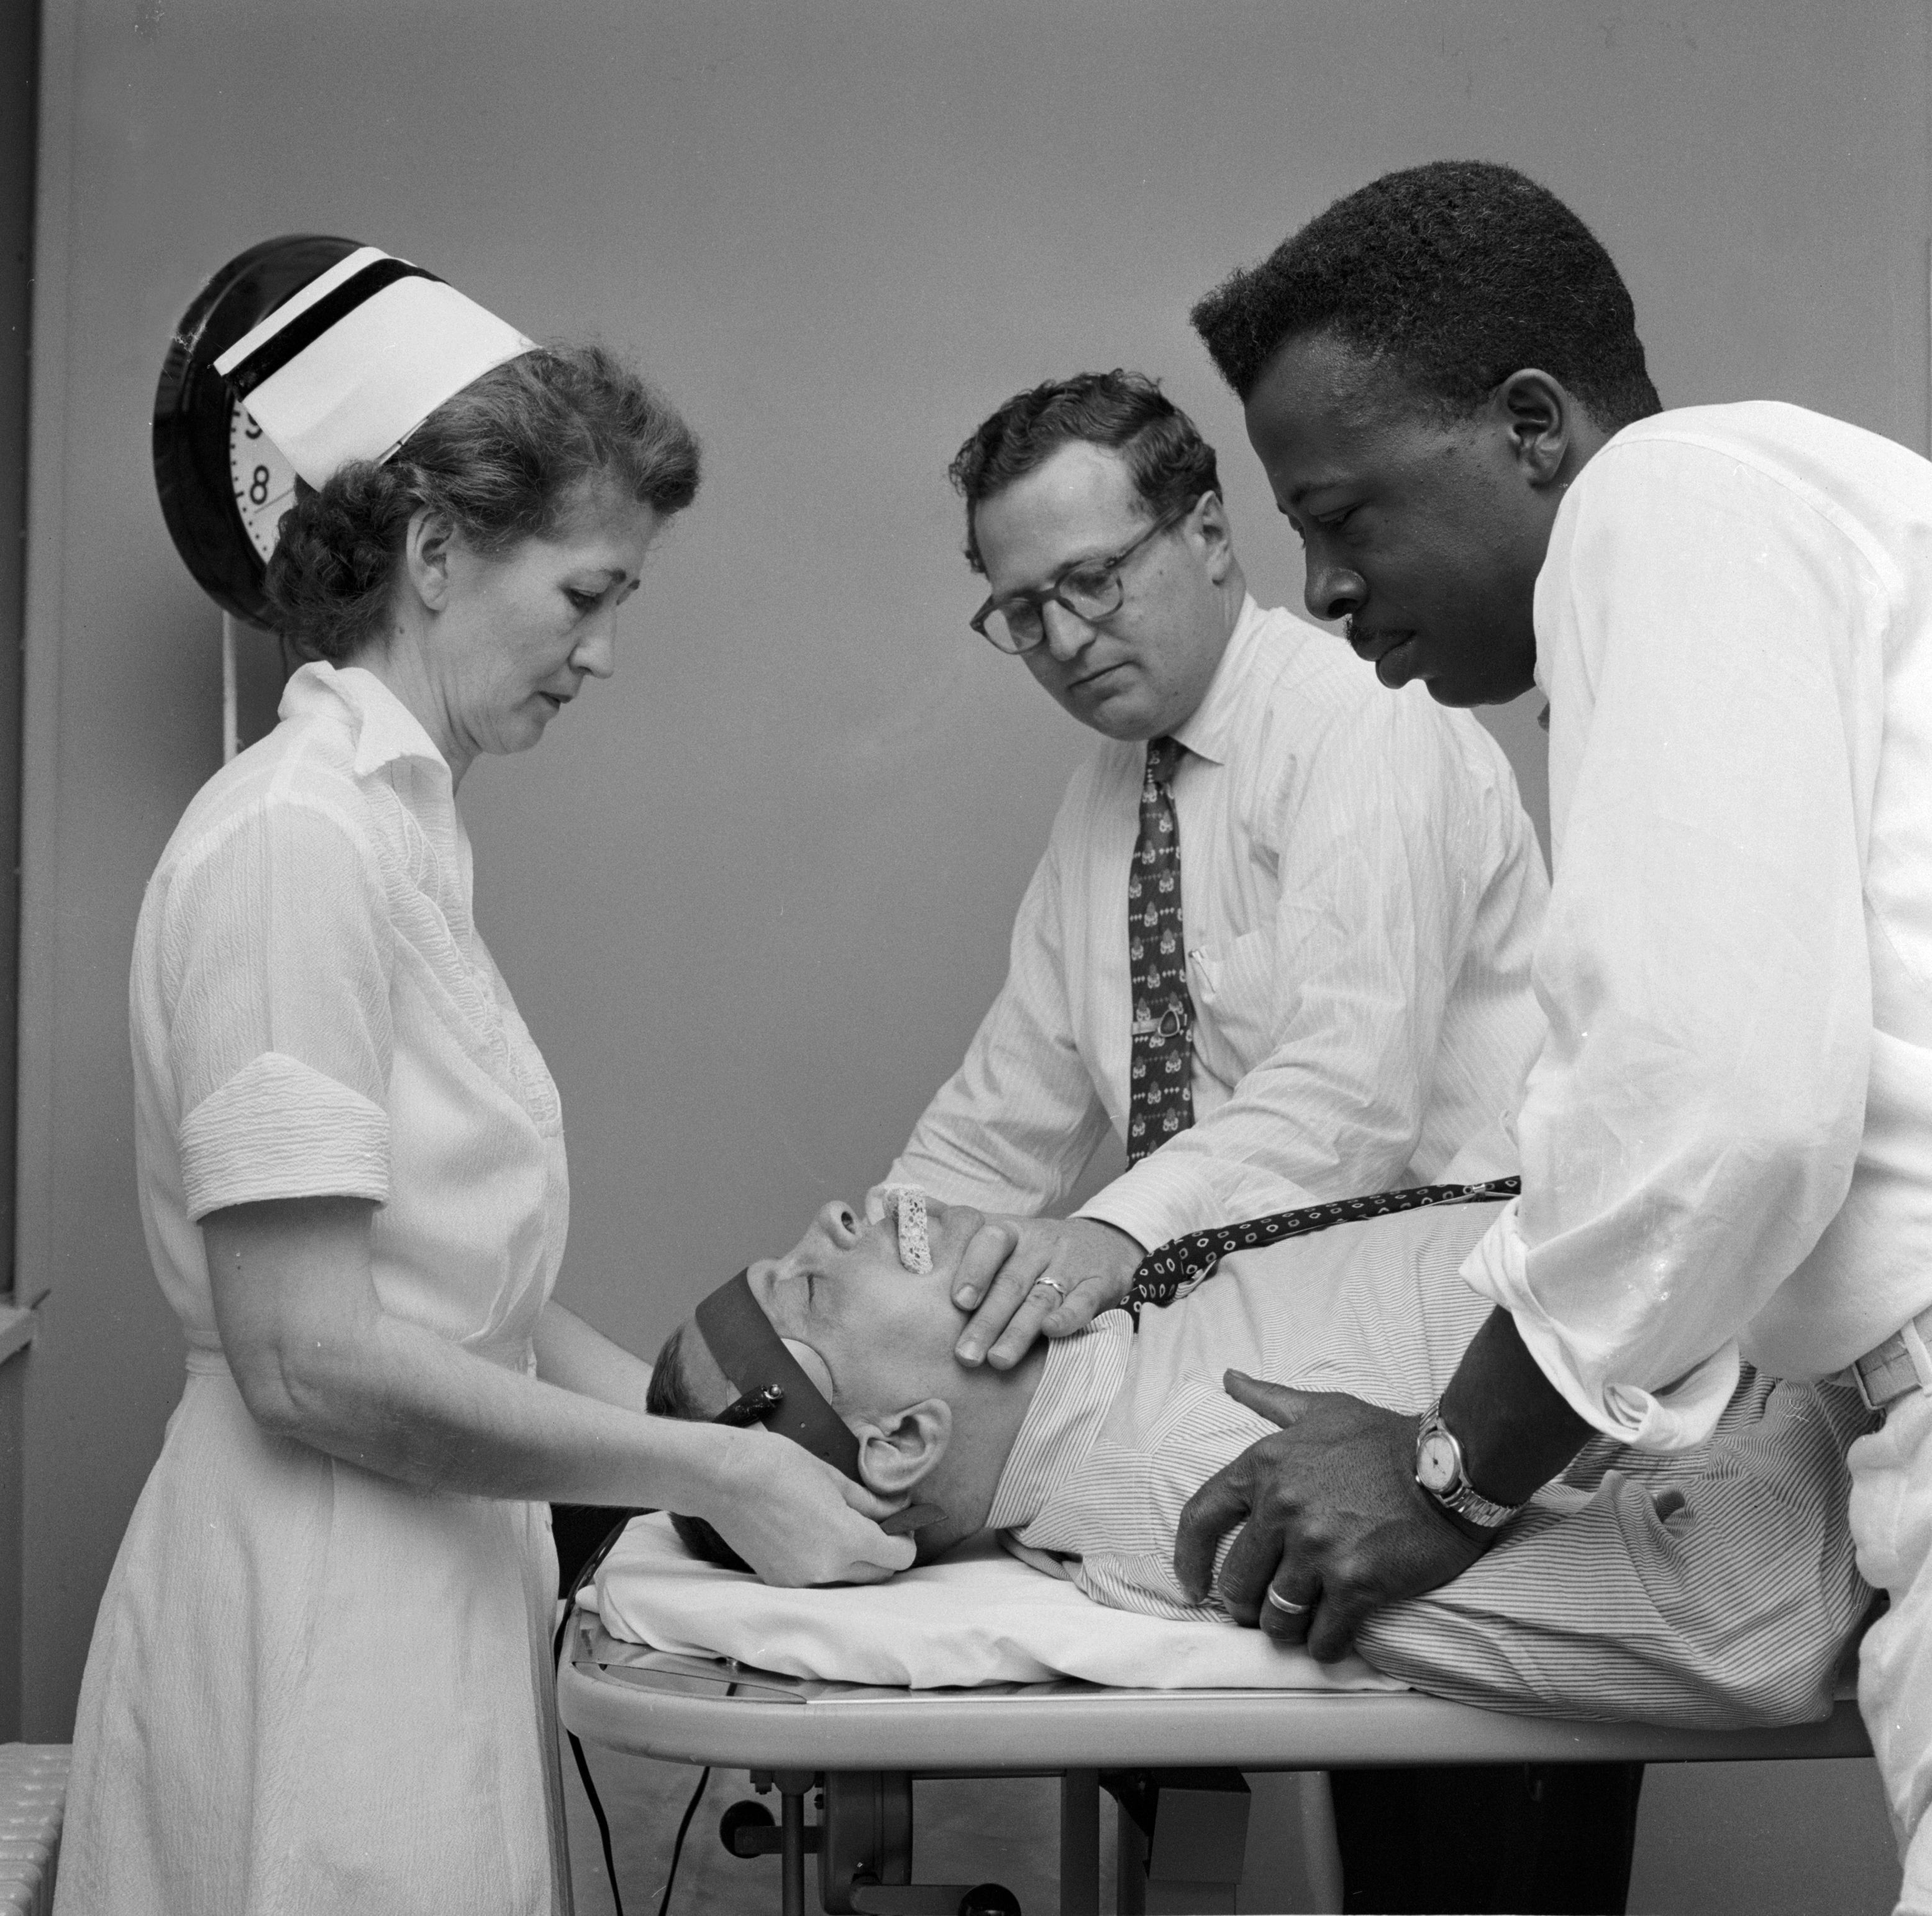 A doctor with attendants preparing a patient for electroconvulsive therapy.